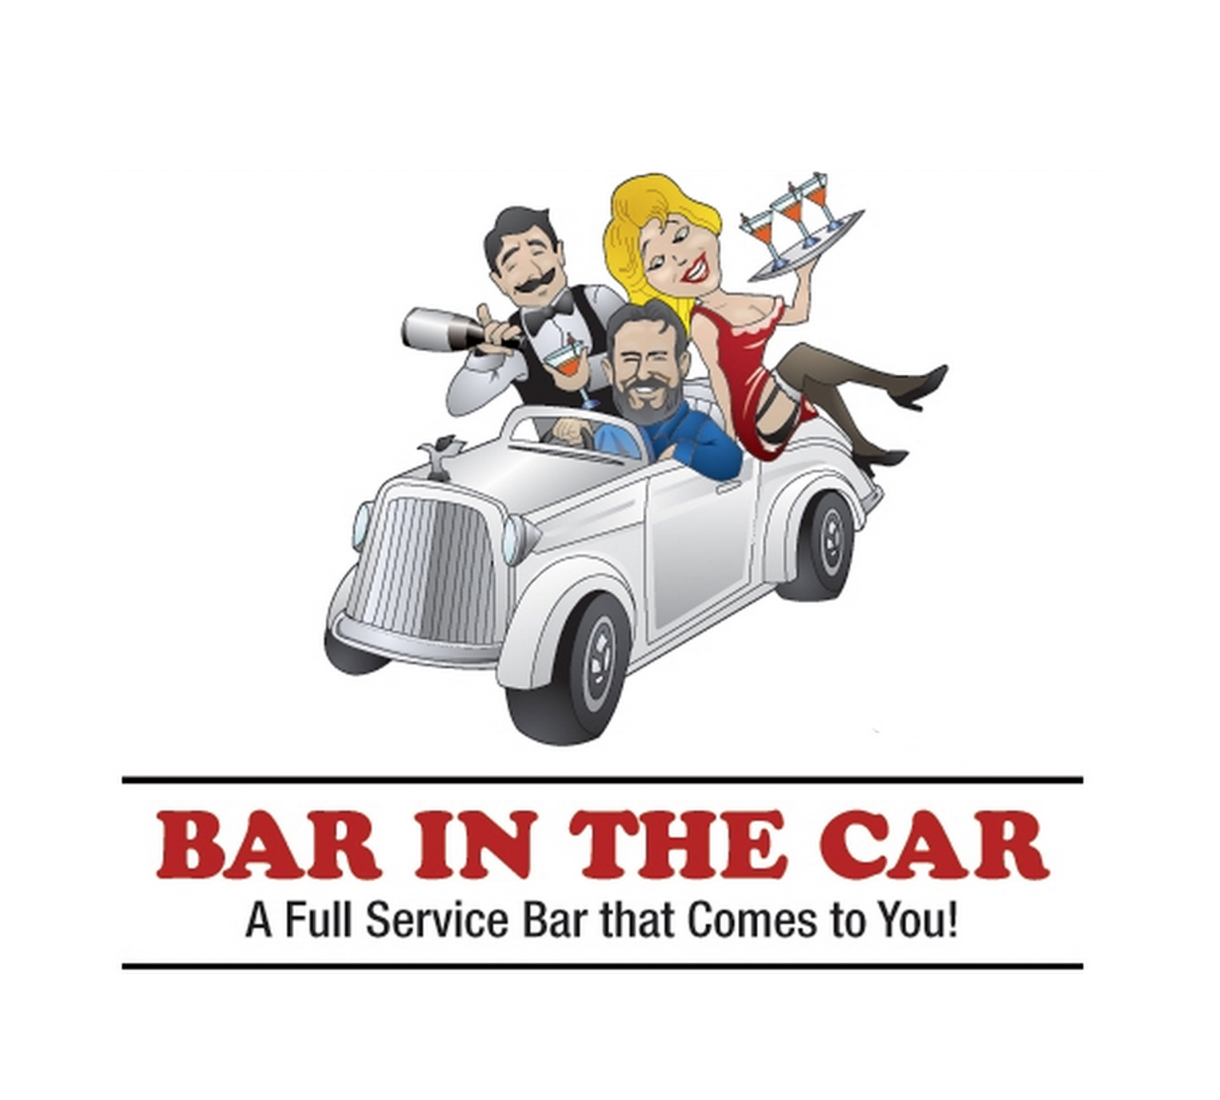 bar in the car - a full service bar that comes to you